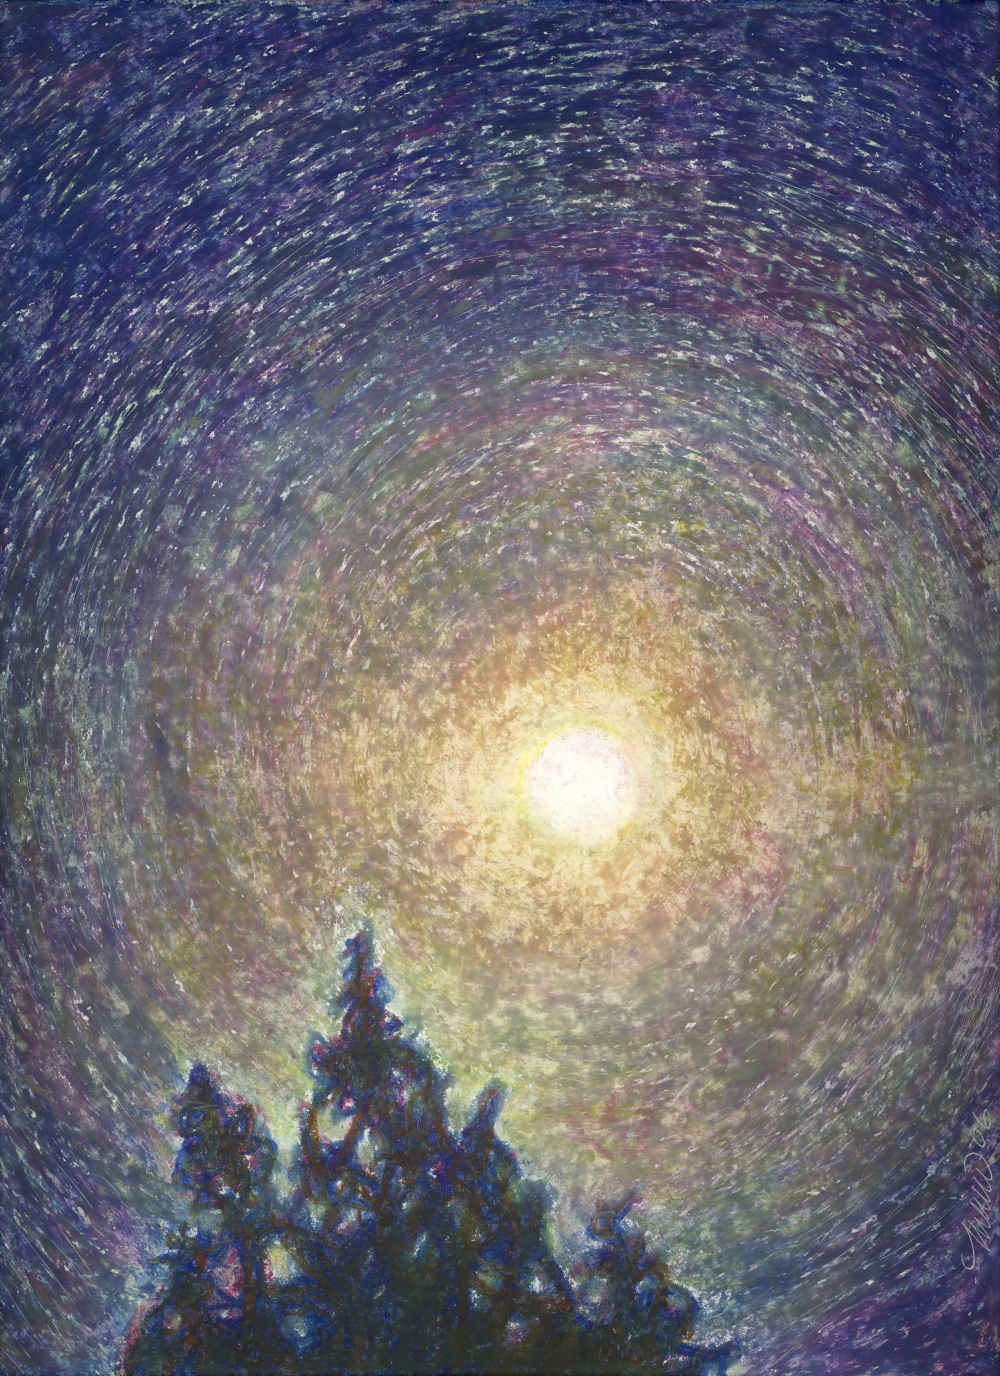 Moon Over Cypress, Neighborhood Cypress tree in Lewisville, Texas USA, 11 x 14 inches Oil Pastels on paper - sold -